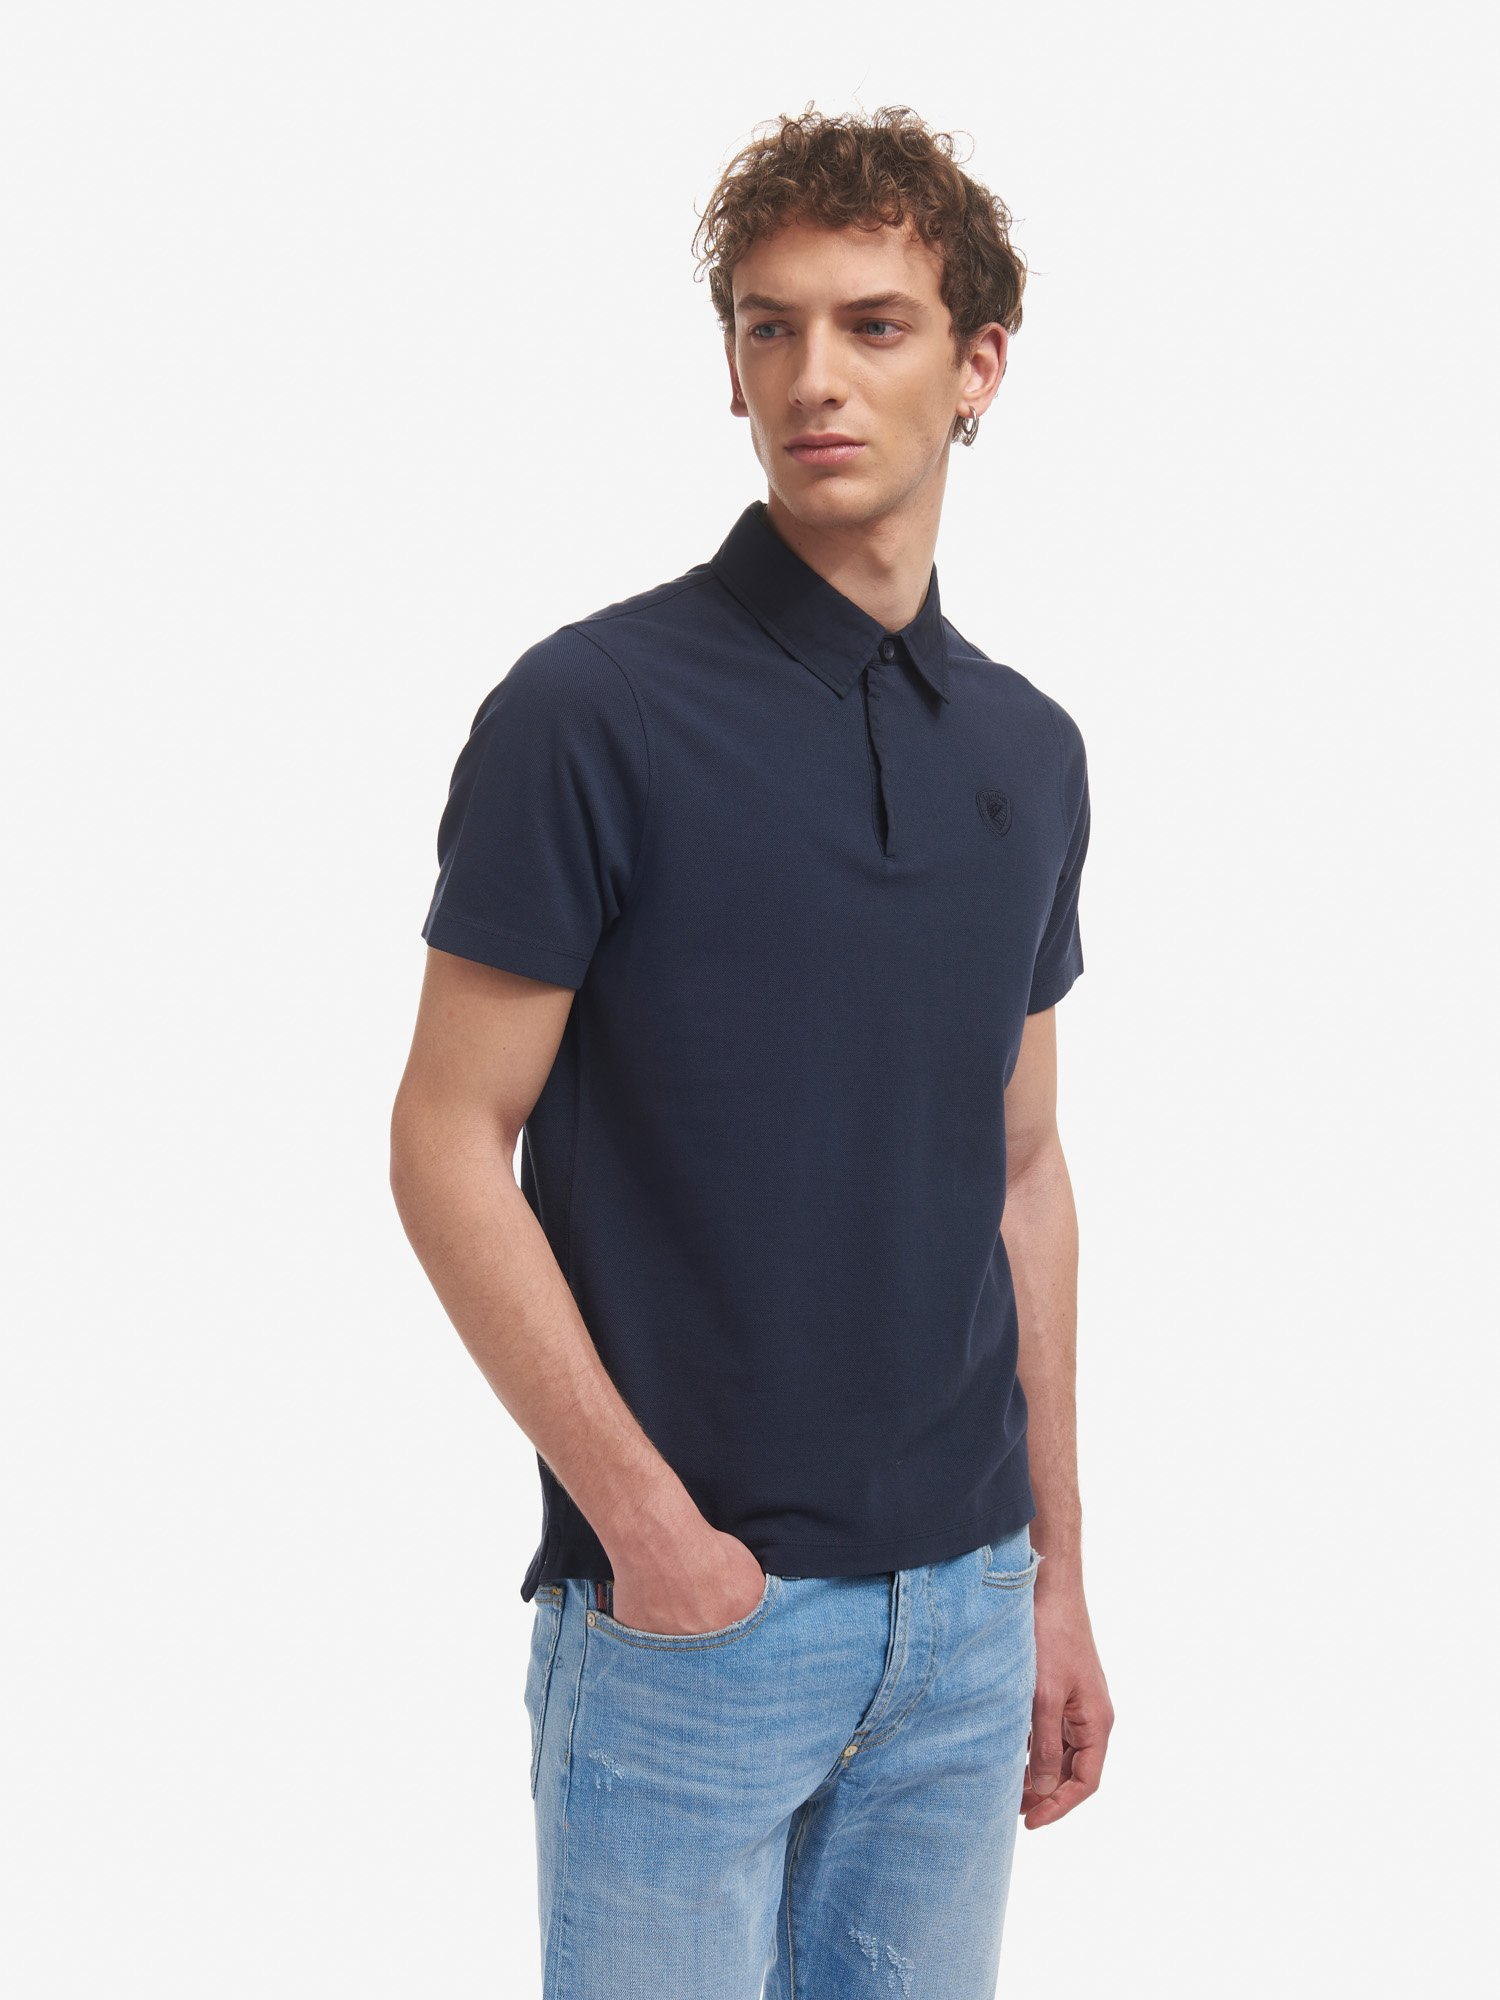 Blauer - POLO SHIRT WITH POPLIN COLLAR - Dark Sapphire - Blauer